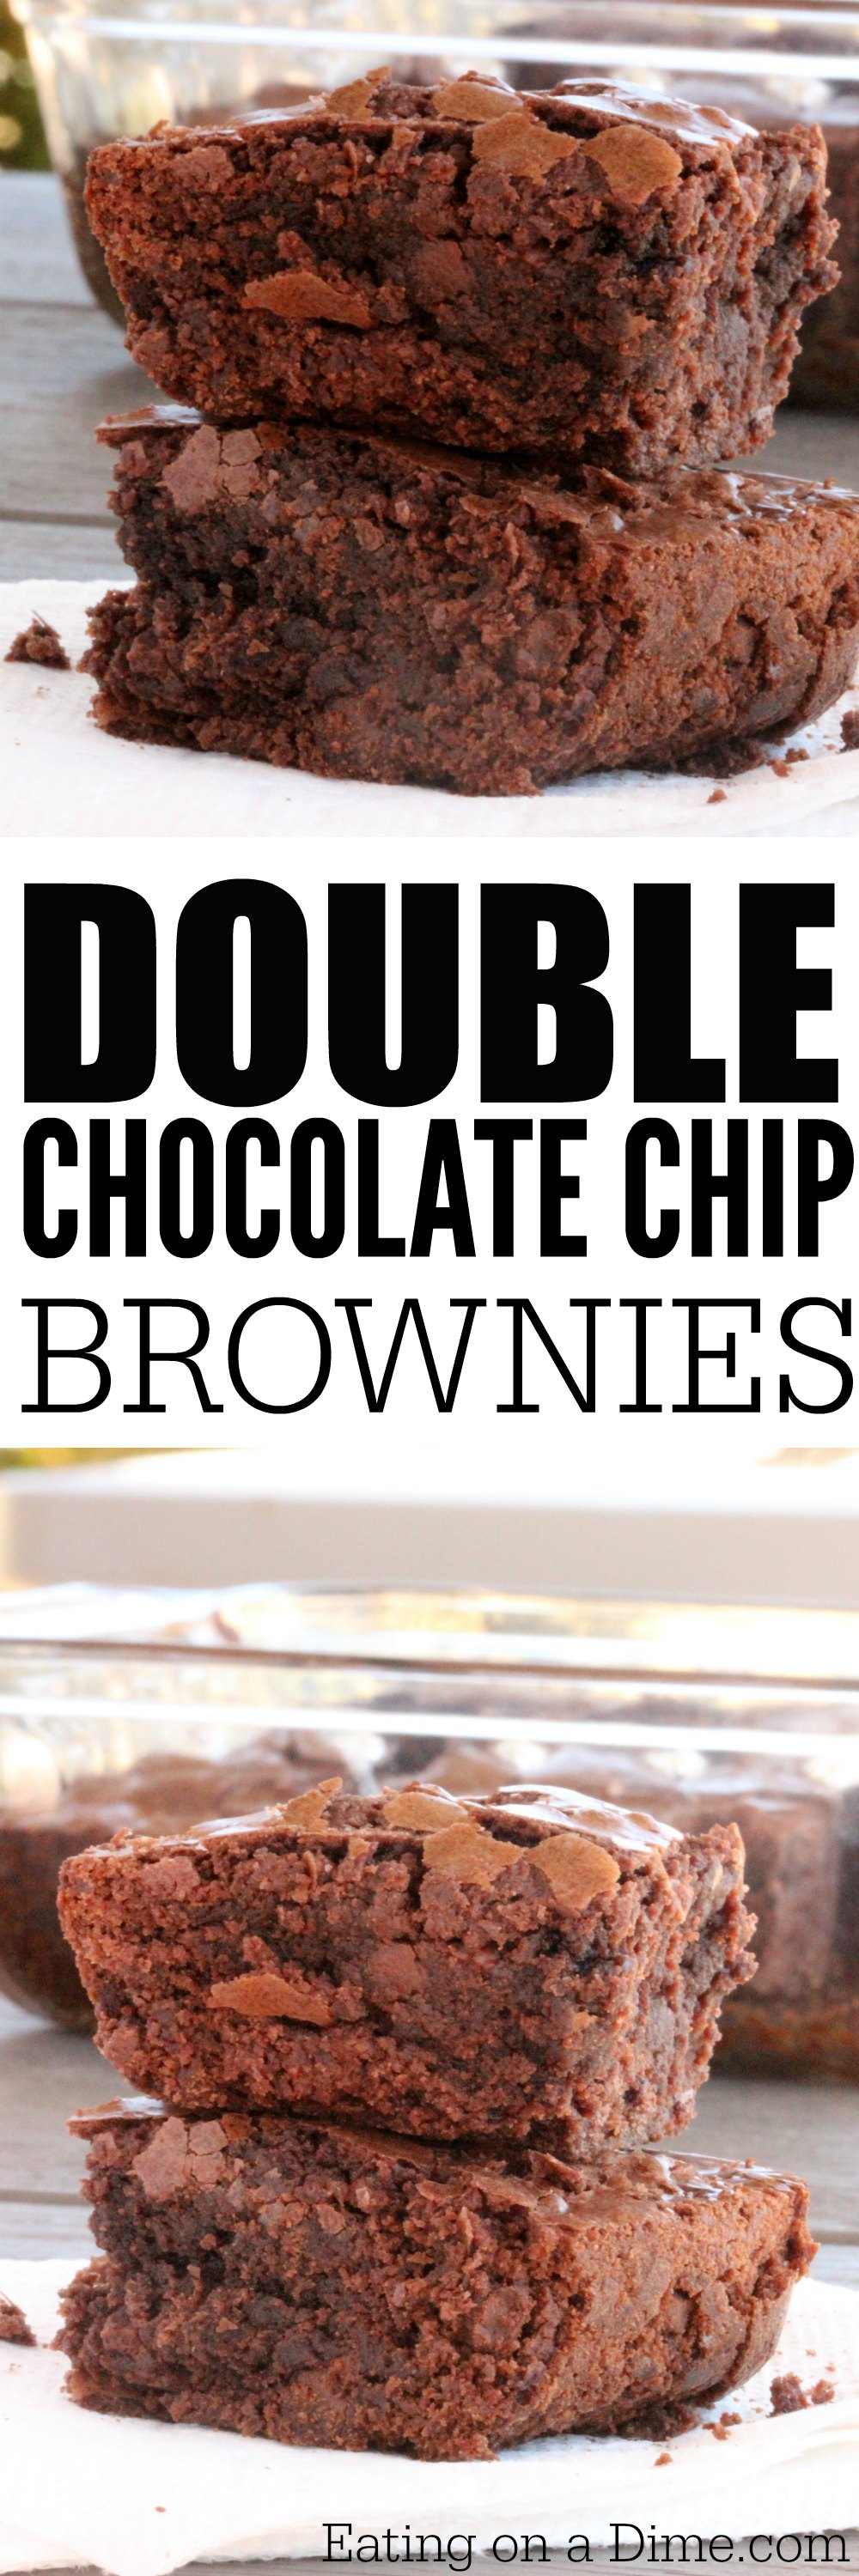 Double Chocolate Chip Brownies - Eating on a Dime